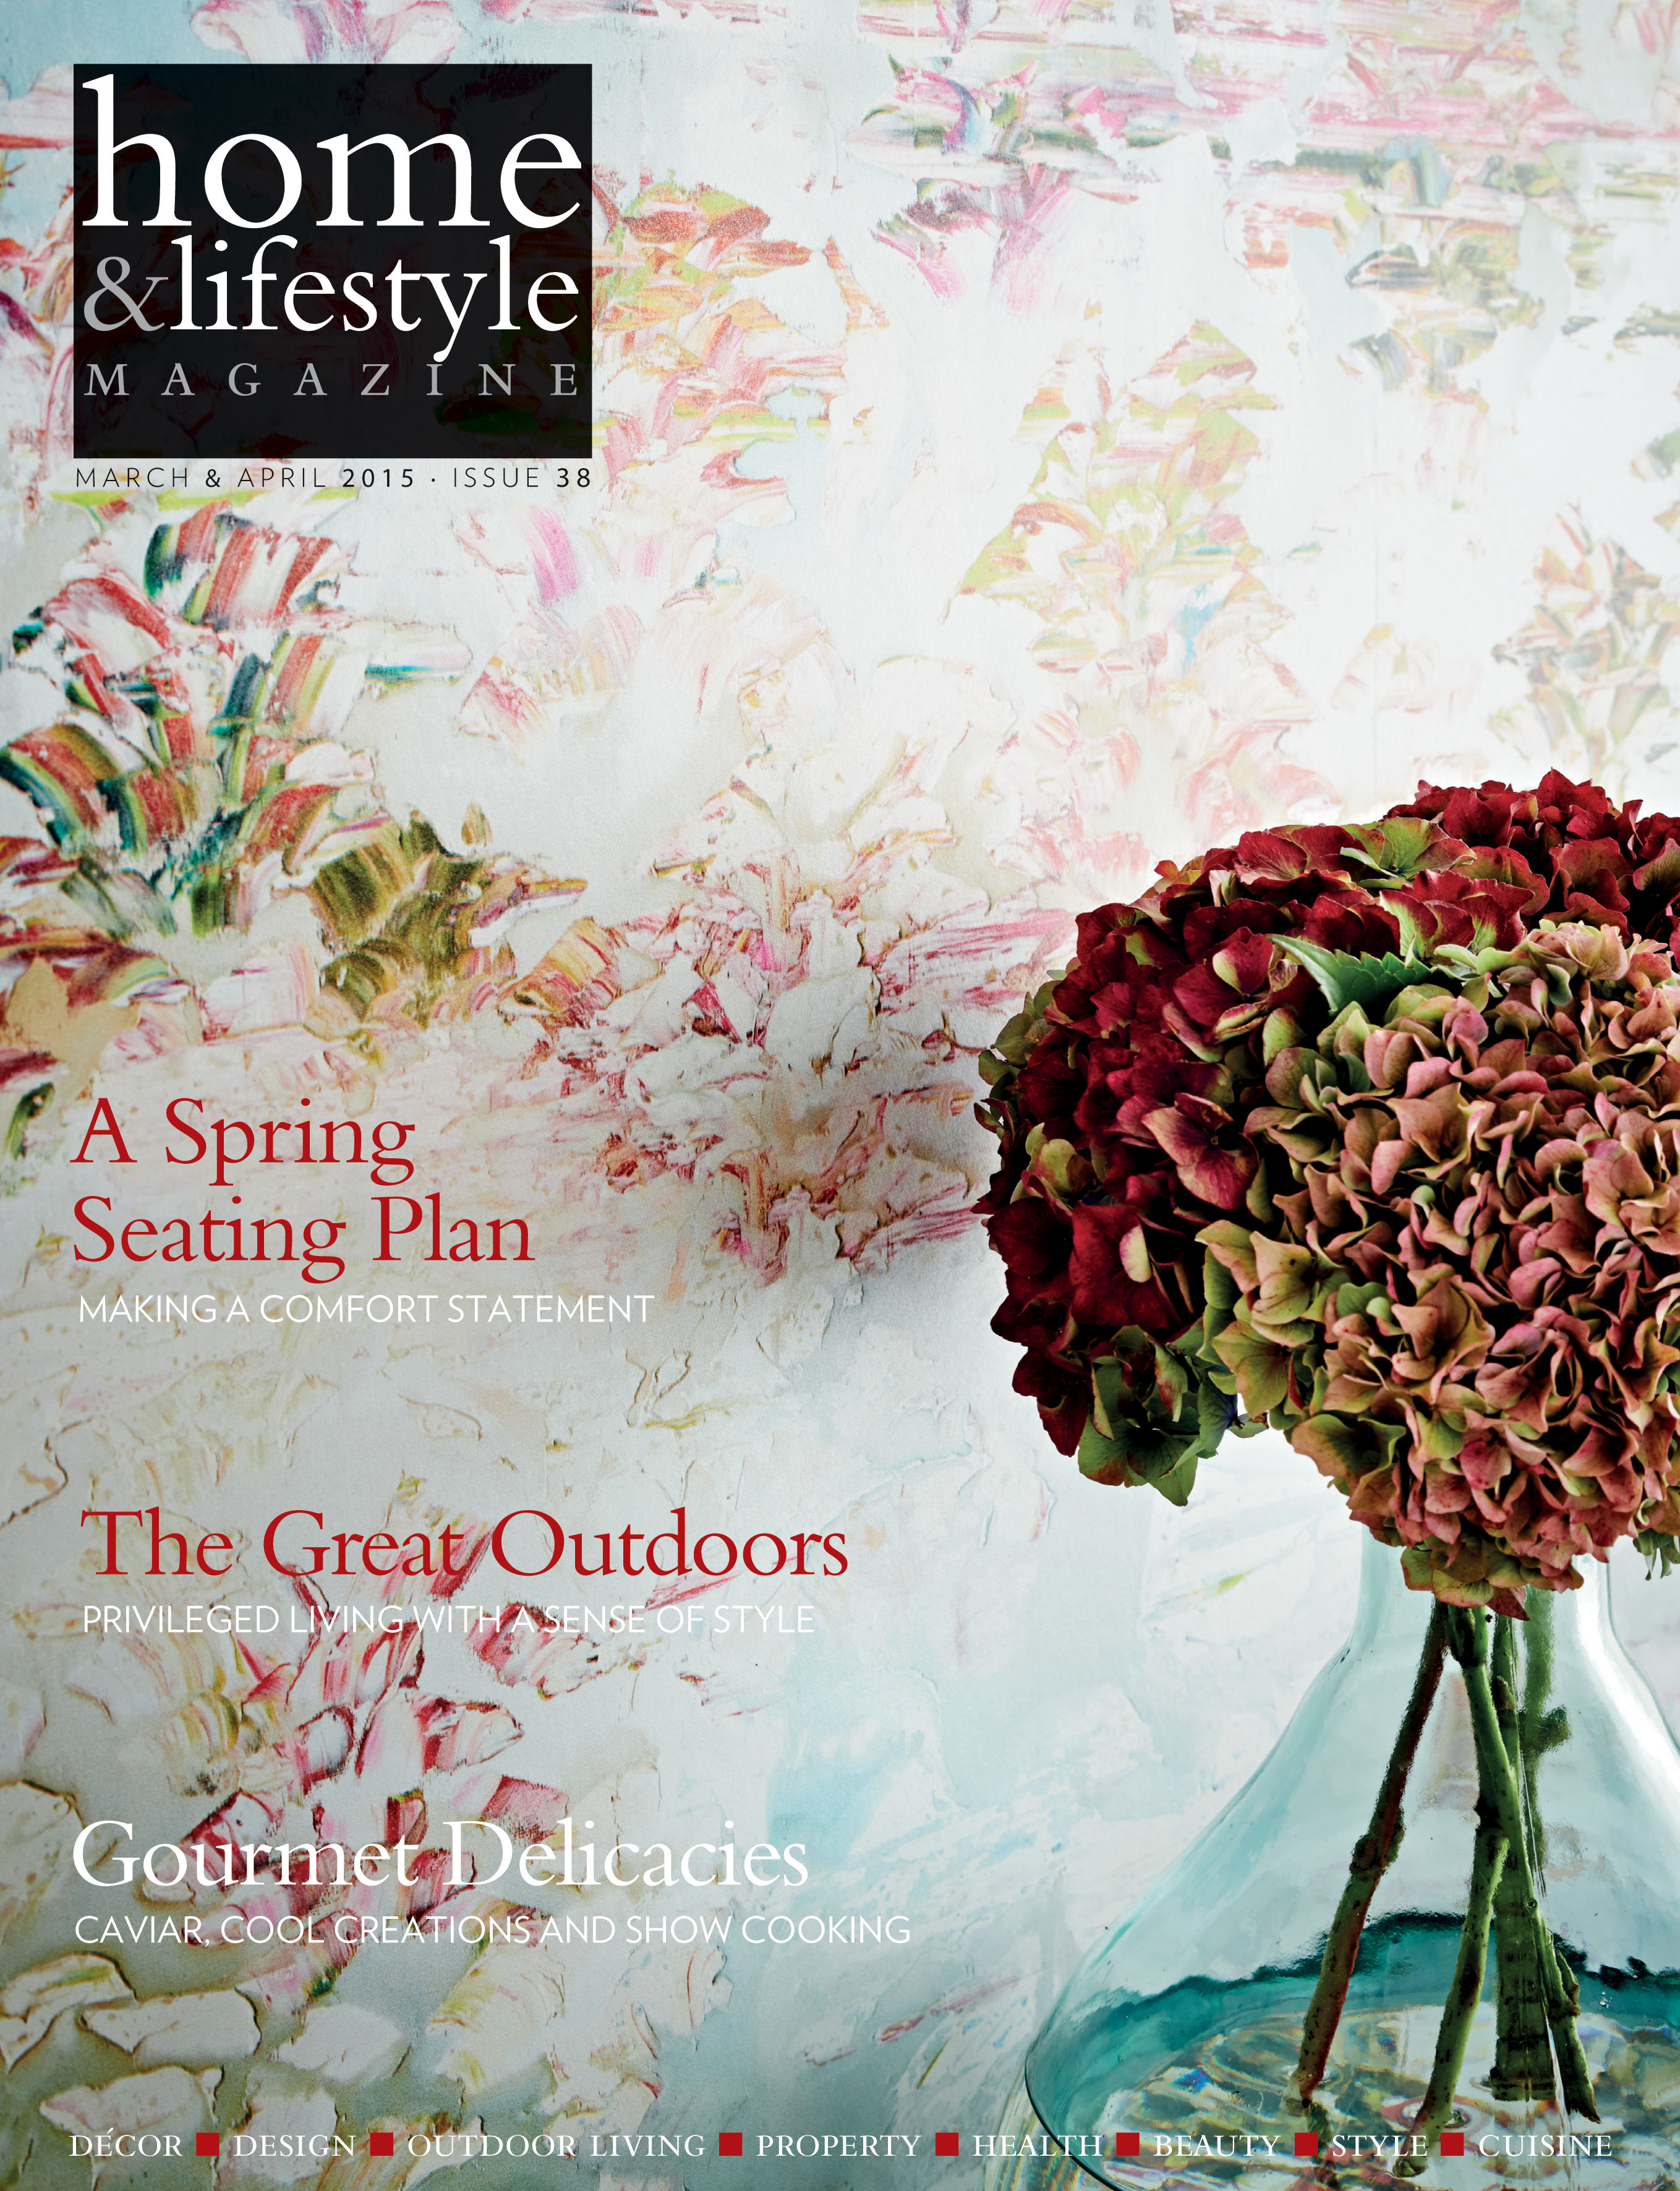 March April 2015 edition of Home & Lifestyle Magazine